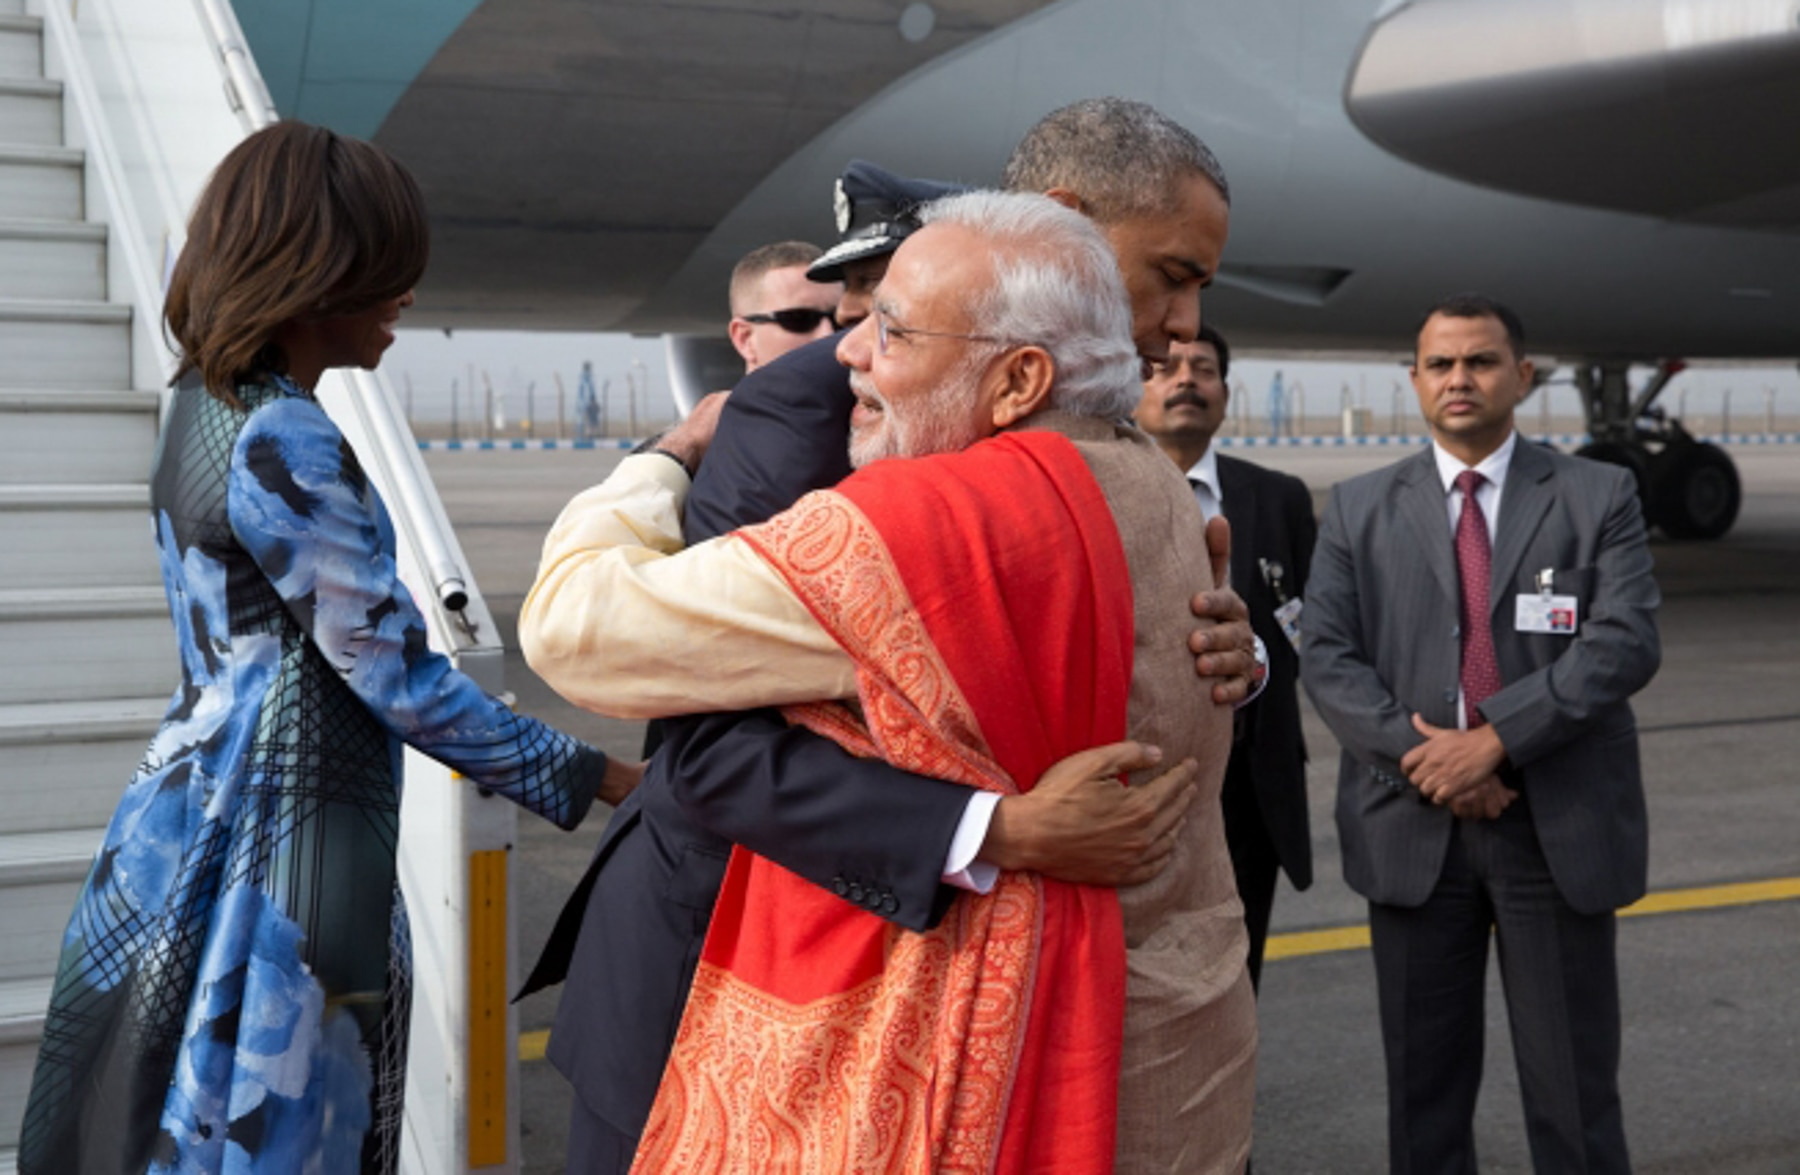 President Obama and Narendra Modi hugging at base of aircraft stairs (White House/Pete Souza)